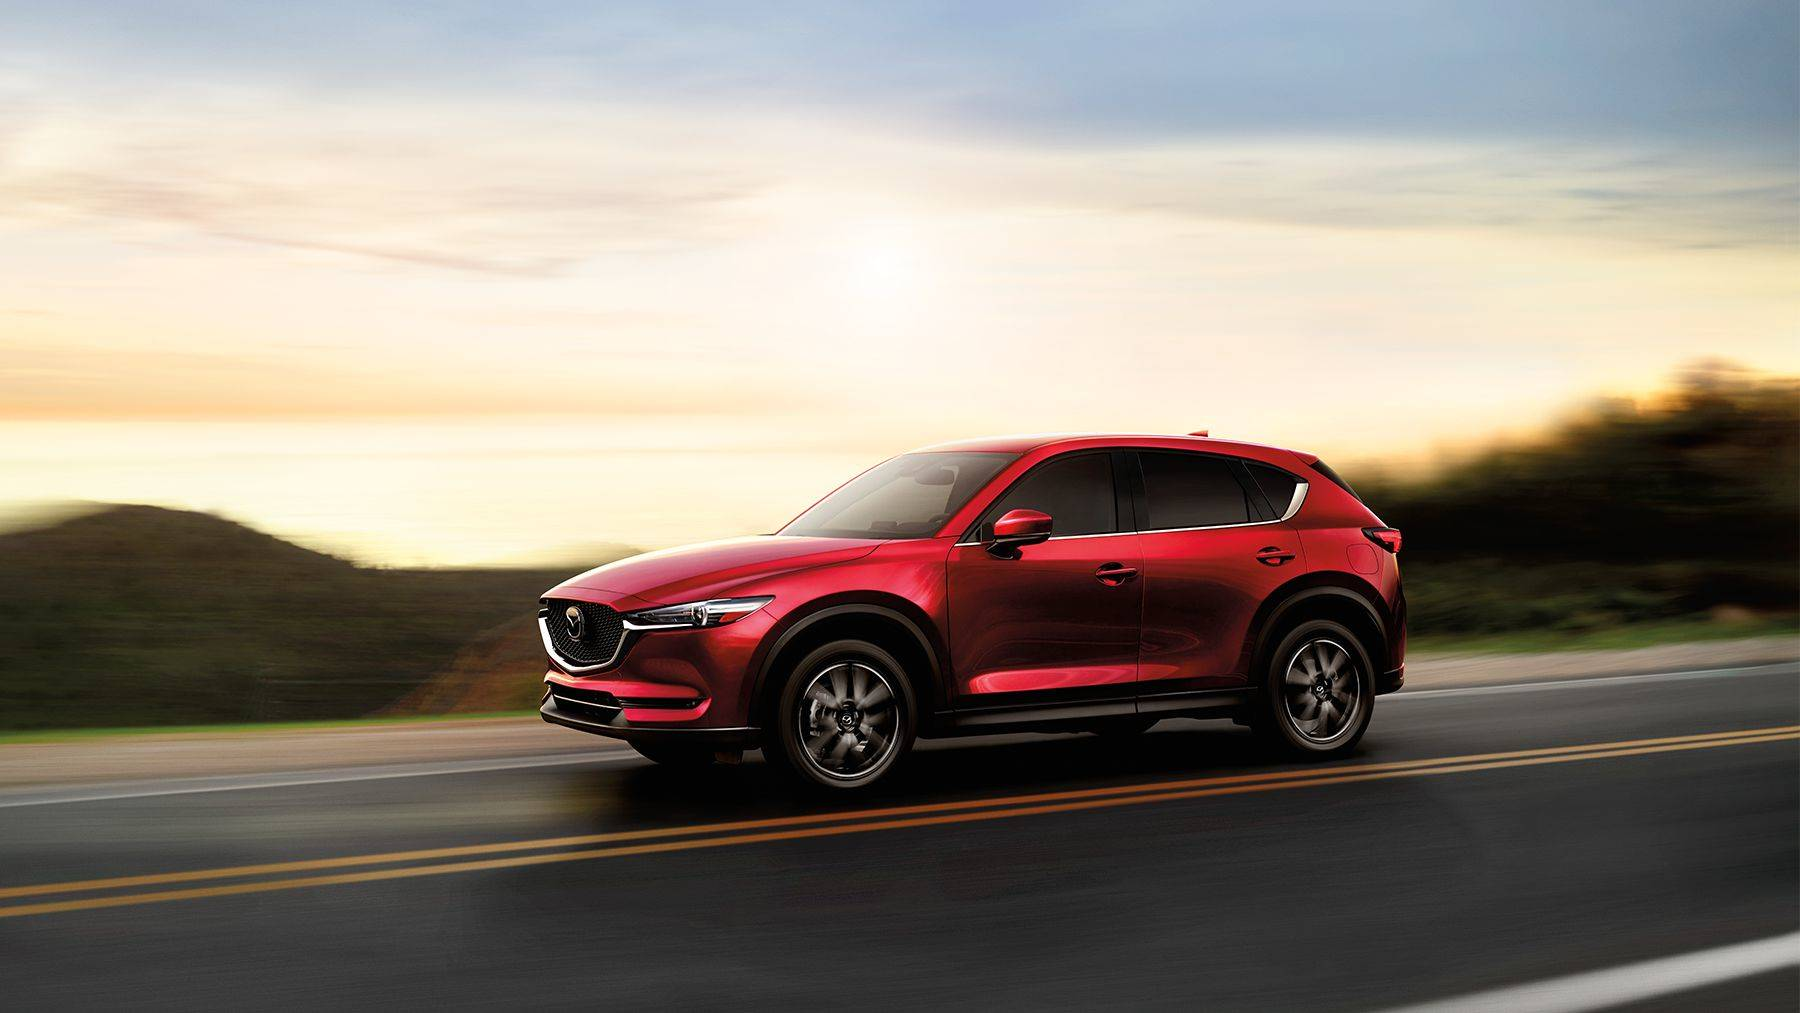 2018 mazda cx 5 for sale near ann arbor mi brighton mazda. Black Bedroom Furniture Sets. Home Design Ideas